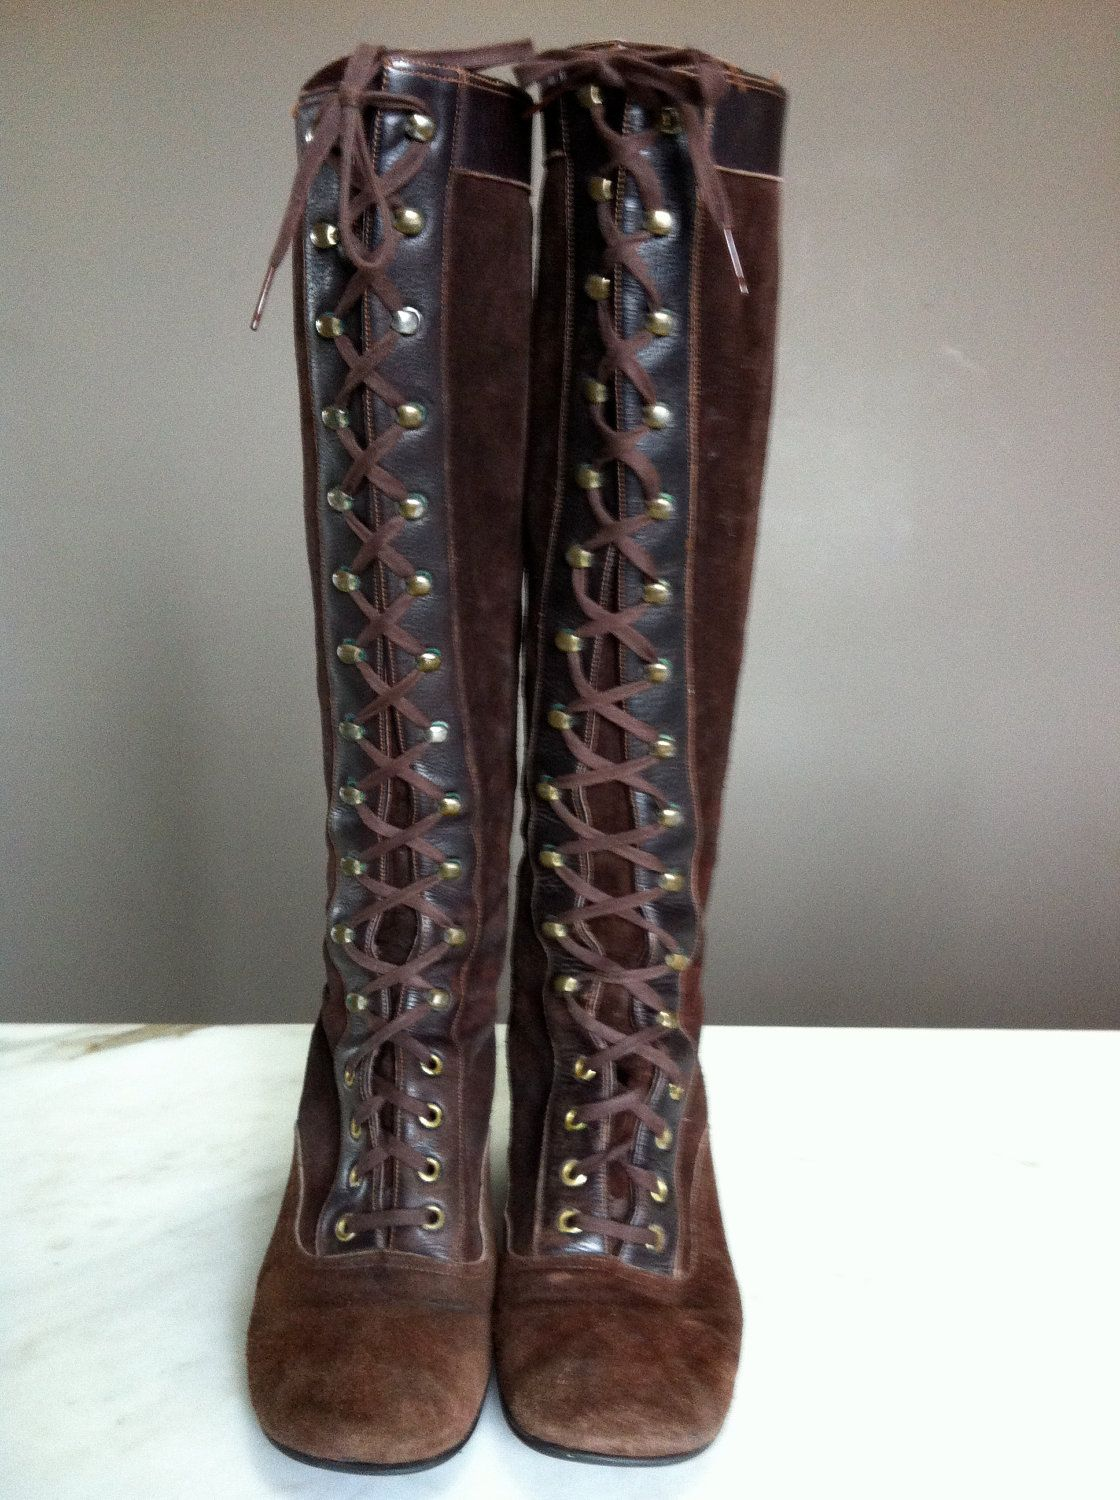 6524790272b Vintage Brow Suede Lace Up Knee High Boots - Circa - 60s -70s. $38.00, via  Etsy.